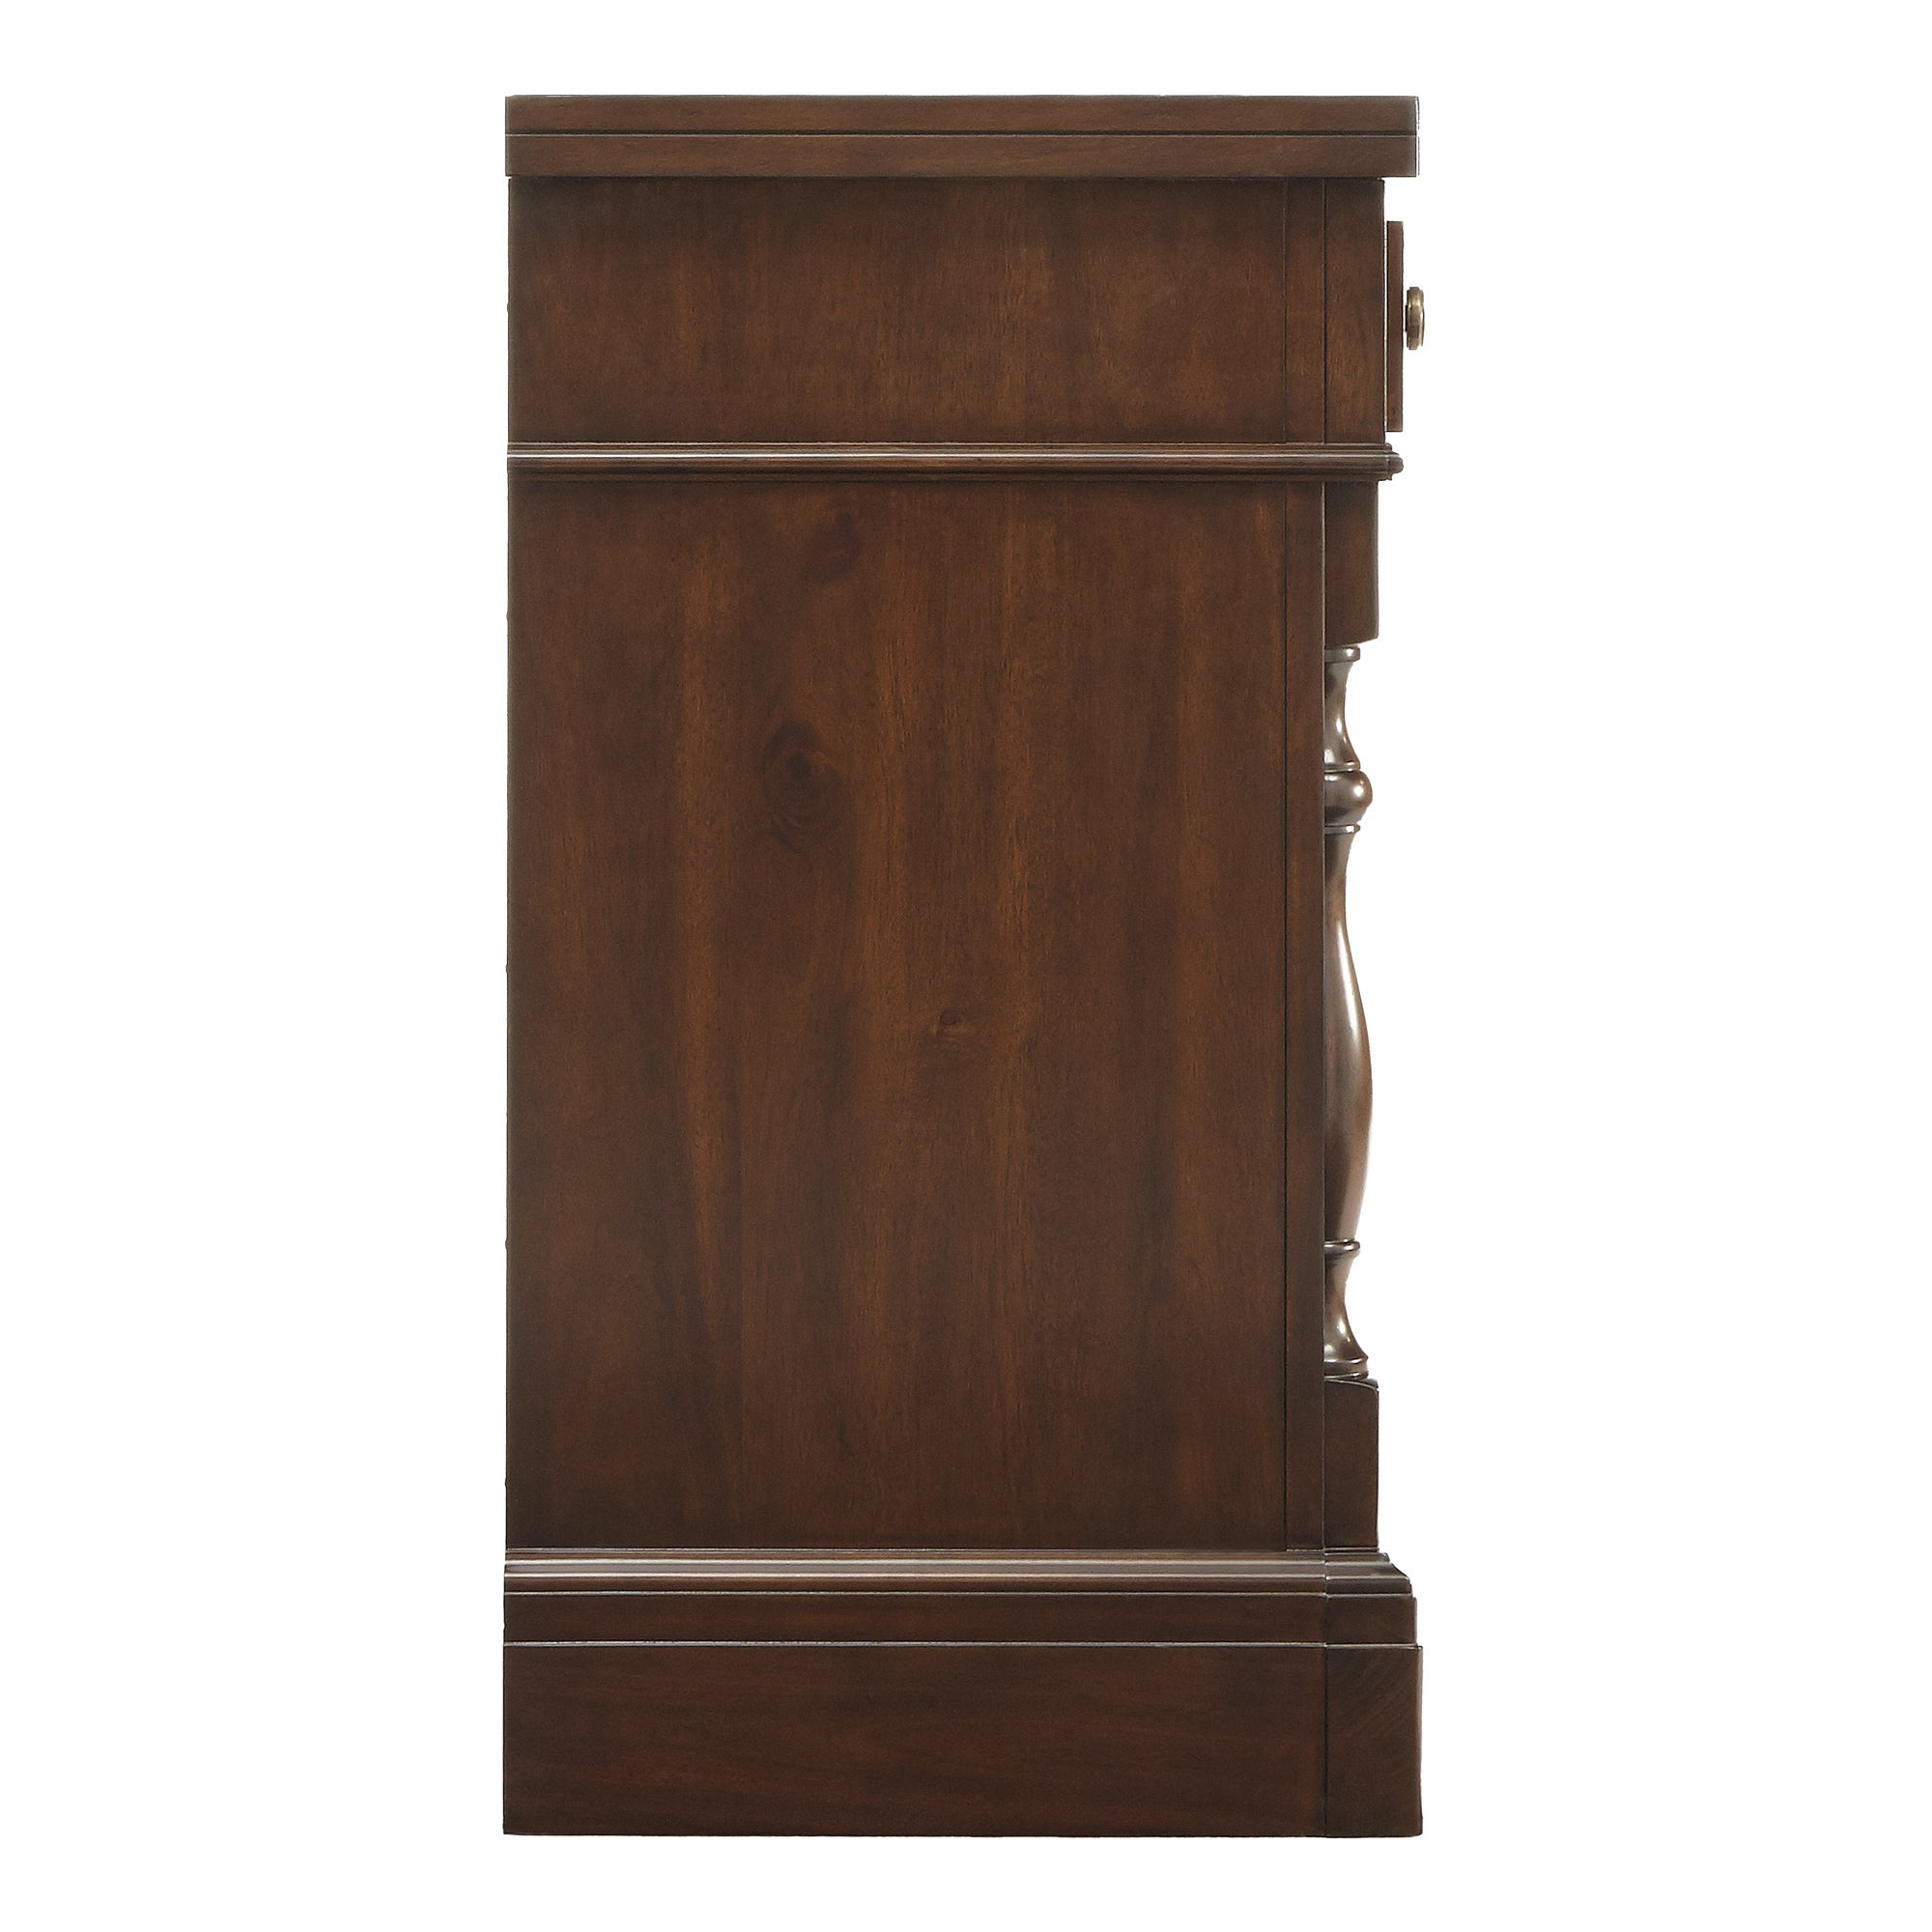 Flatiron Wine Rack Buffet Storage Server by iNSPIRE Q Classic - Free  Shipping Today - Overstock.com - 17190627